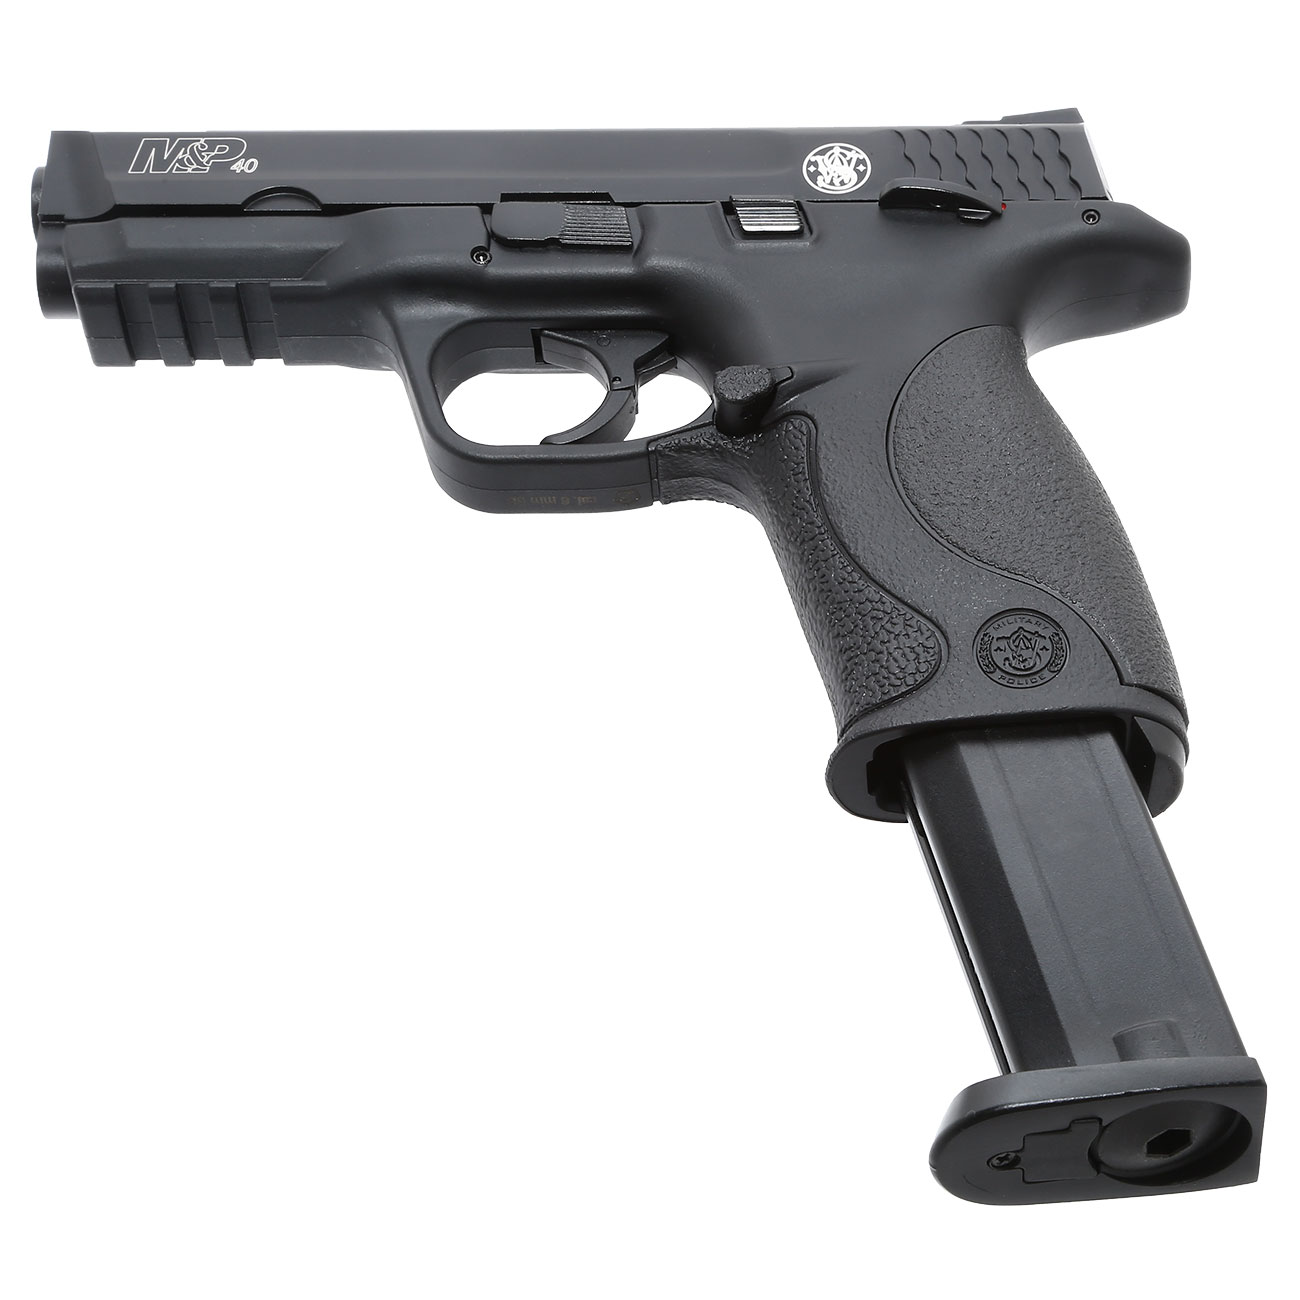 KWC Smith & Wesson M&P40 TS mit Metallschlitten CO2 BlowBack 6mm BB schwarz 5